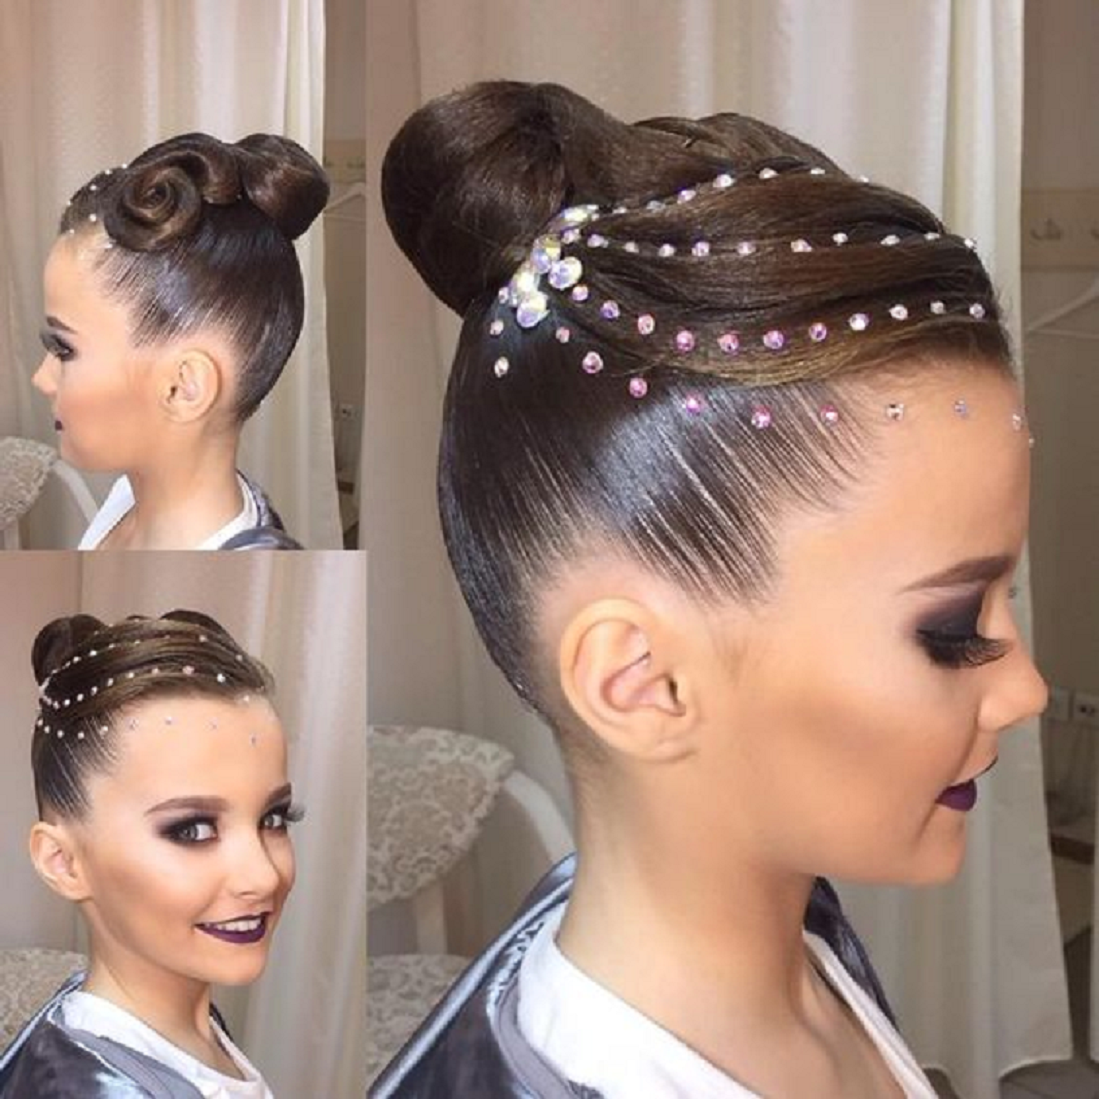 Bling hair accessories Beautiful Curl Bun Hairstyle with Rhinestone Studs and Crystal Stones On The Hair